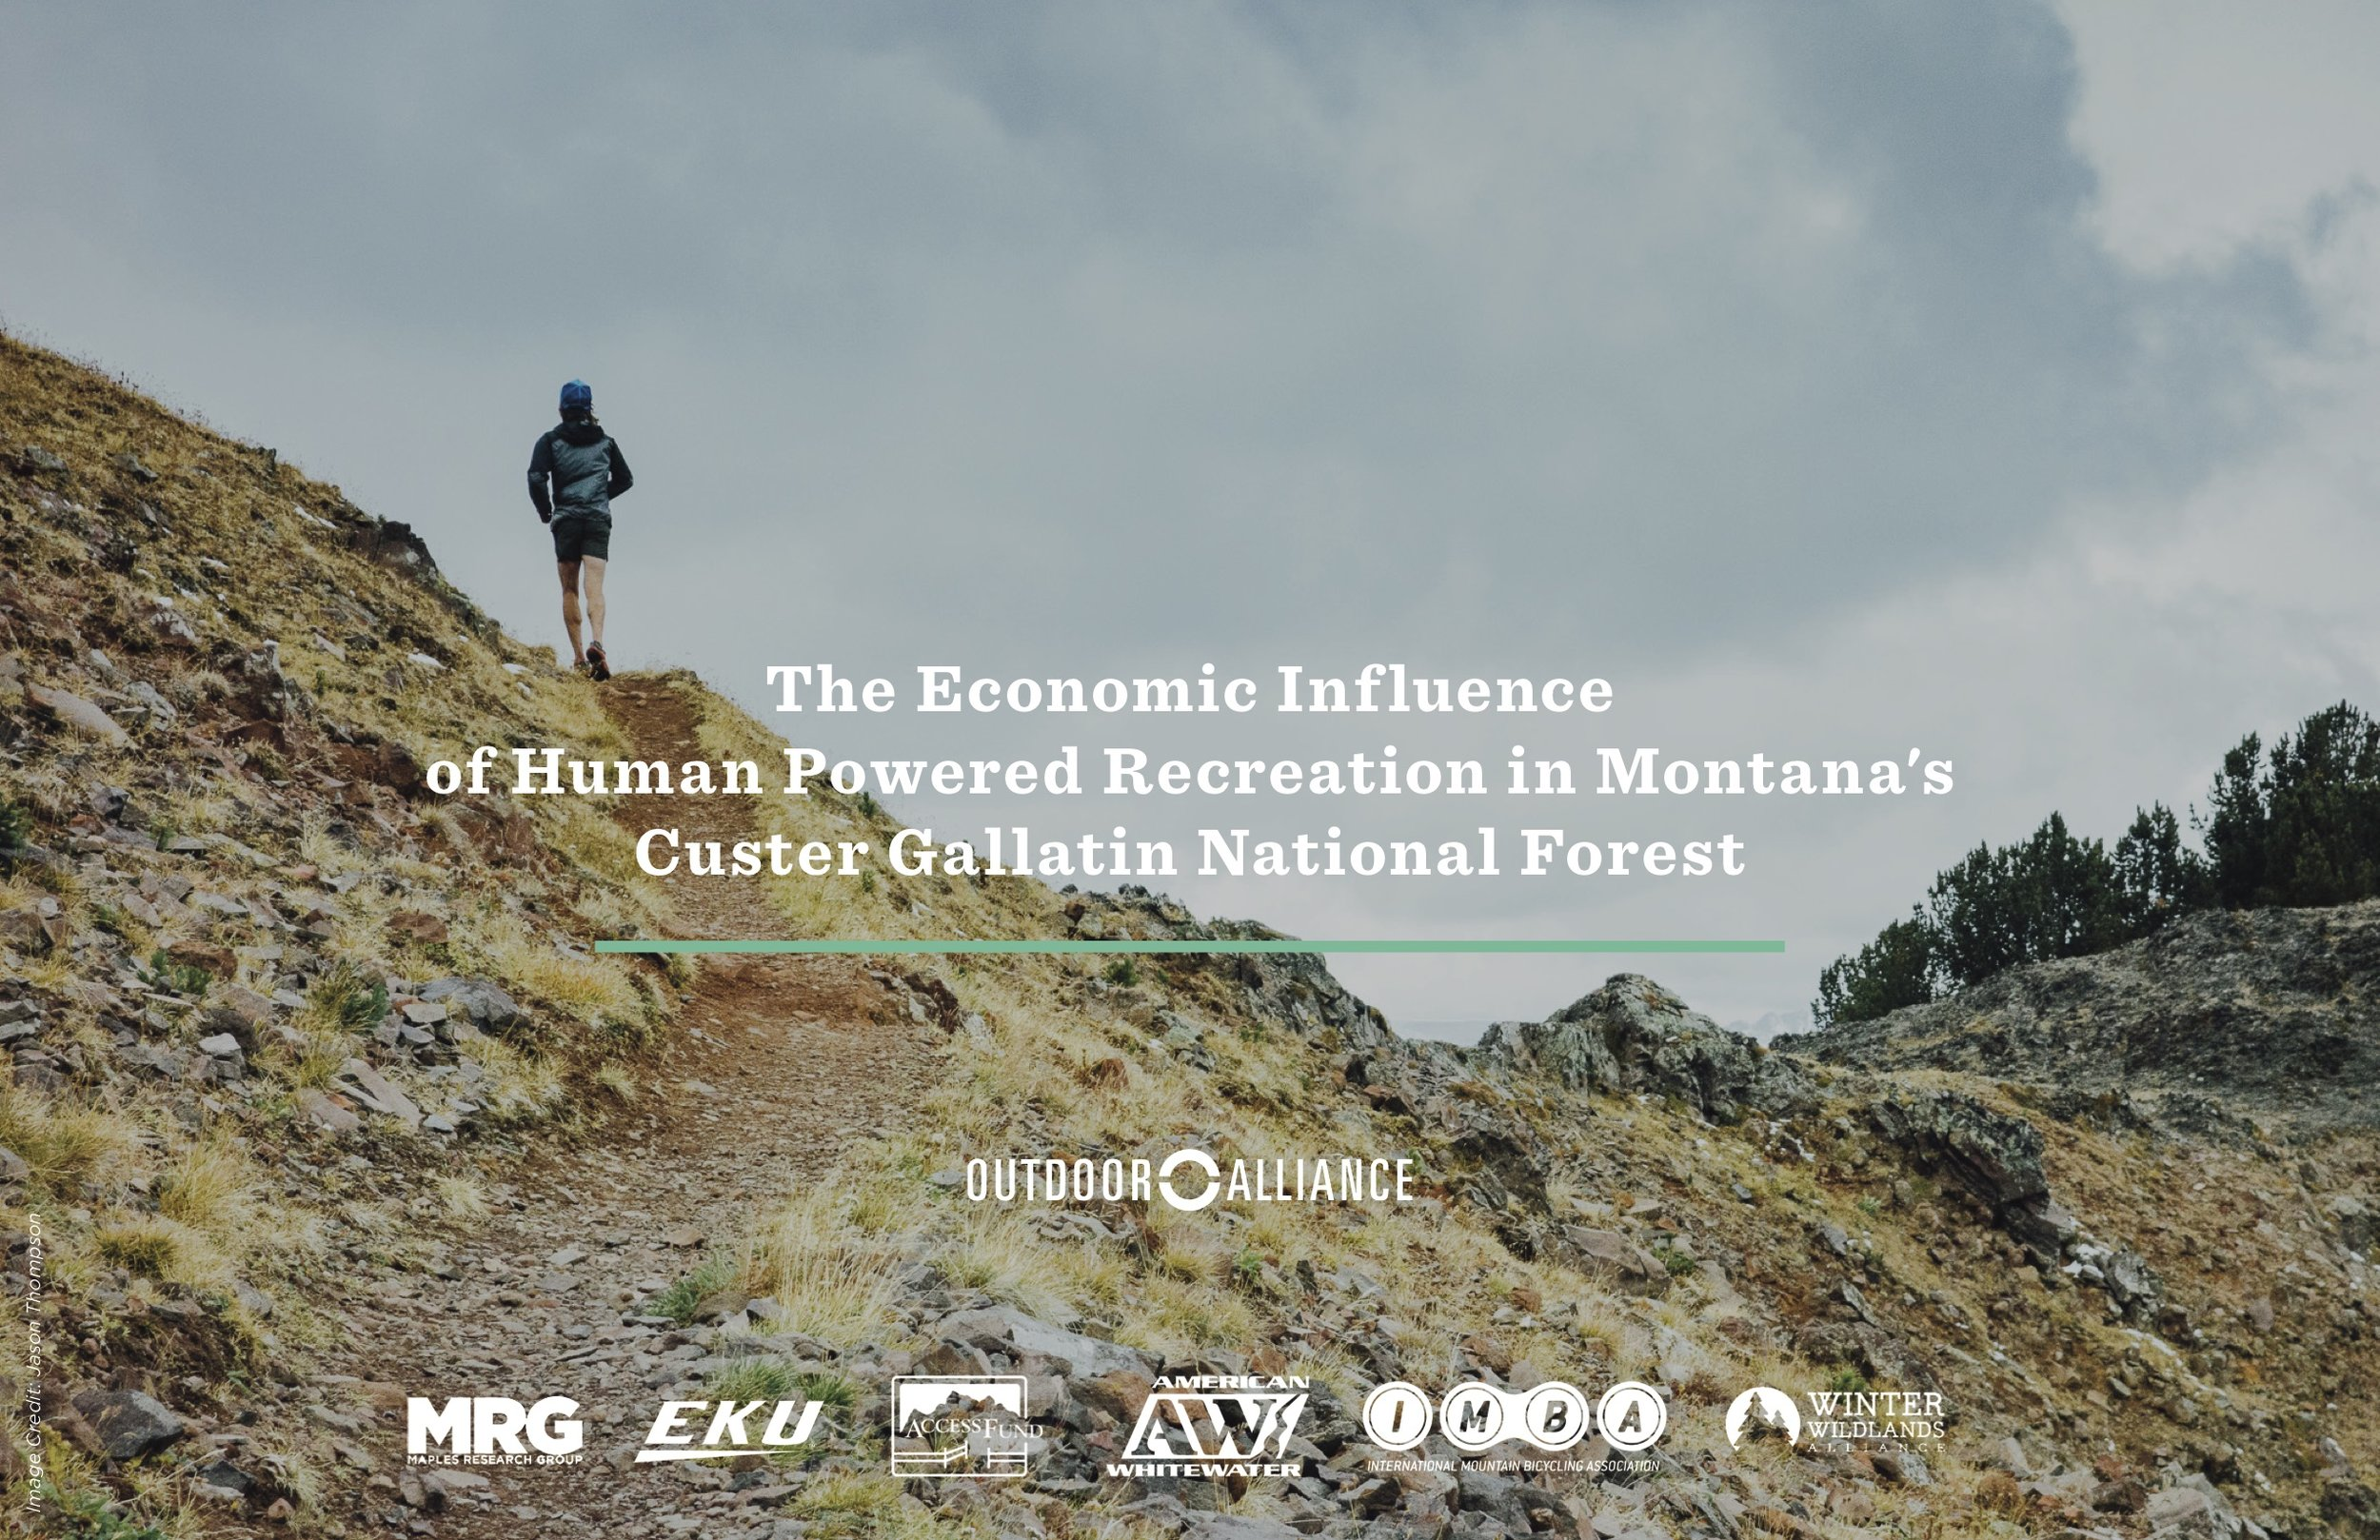 Learn more about the economic influence of outdoor recreation in the Custer Gallatin National Forest by clicking on the image above.